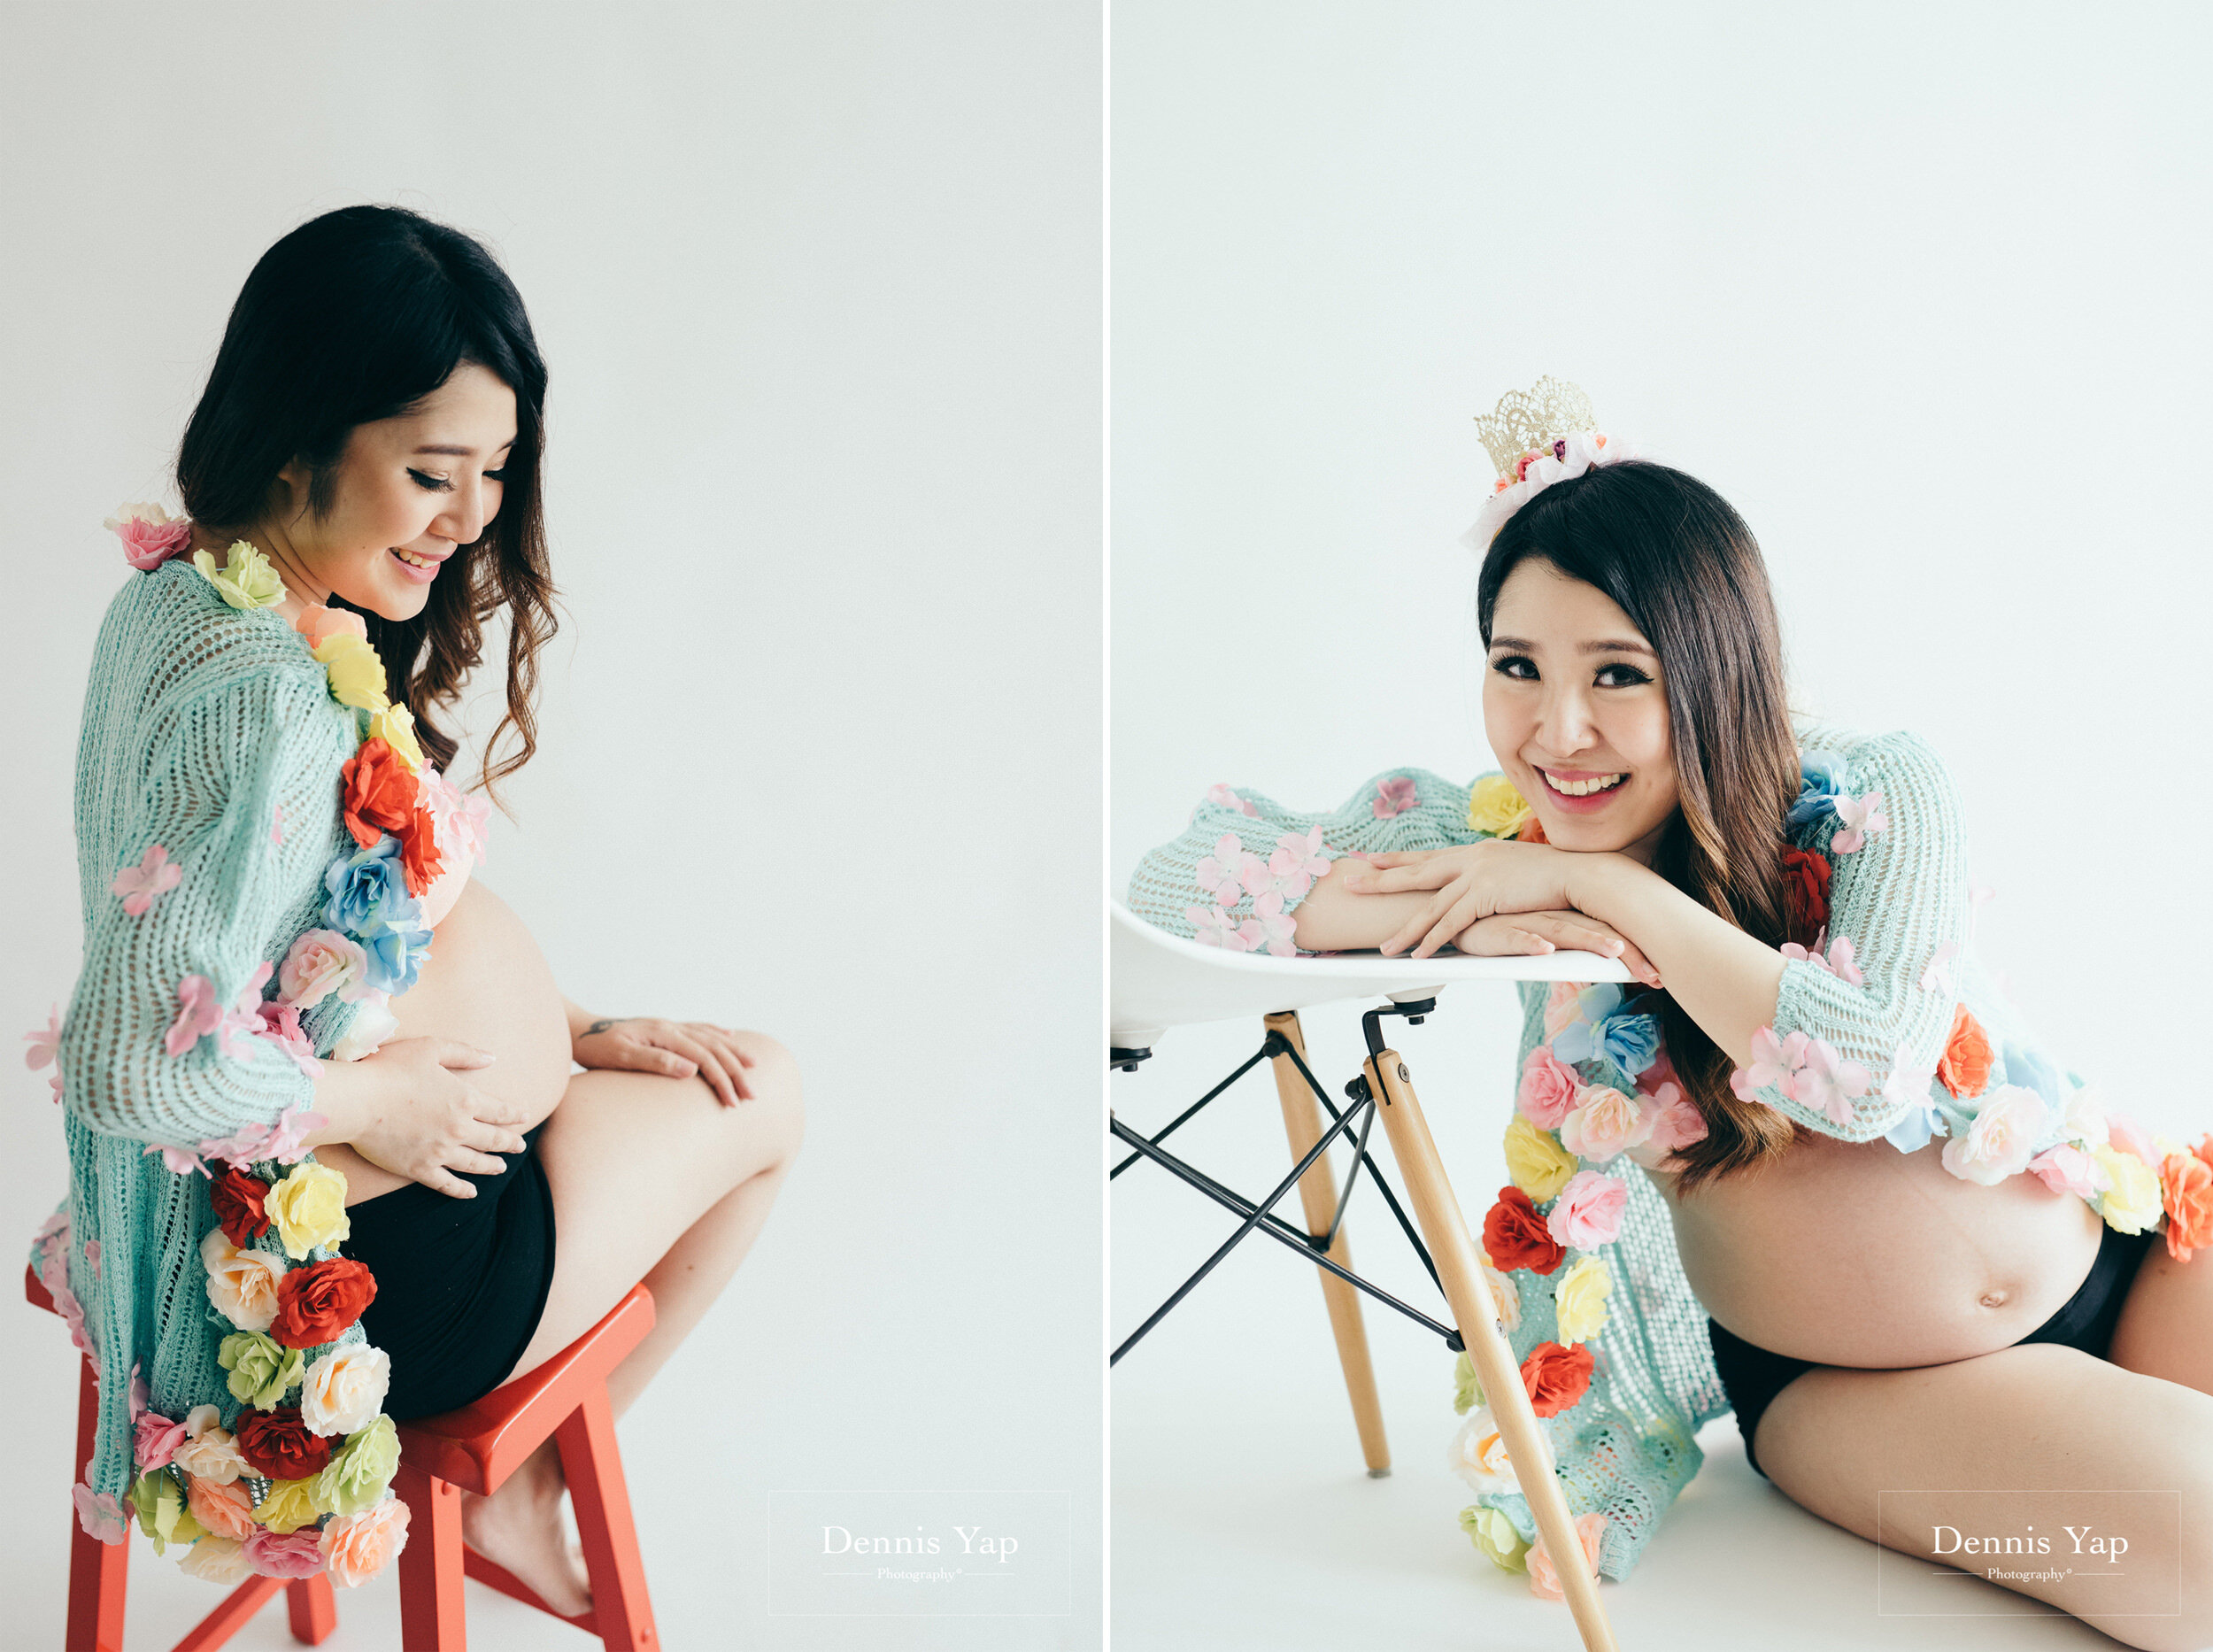 isaac evon maternity family portrait dennis yap photography studio indoor fun colorful-127.jpg